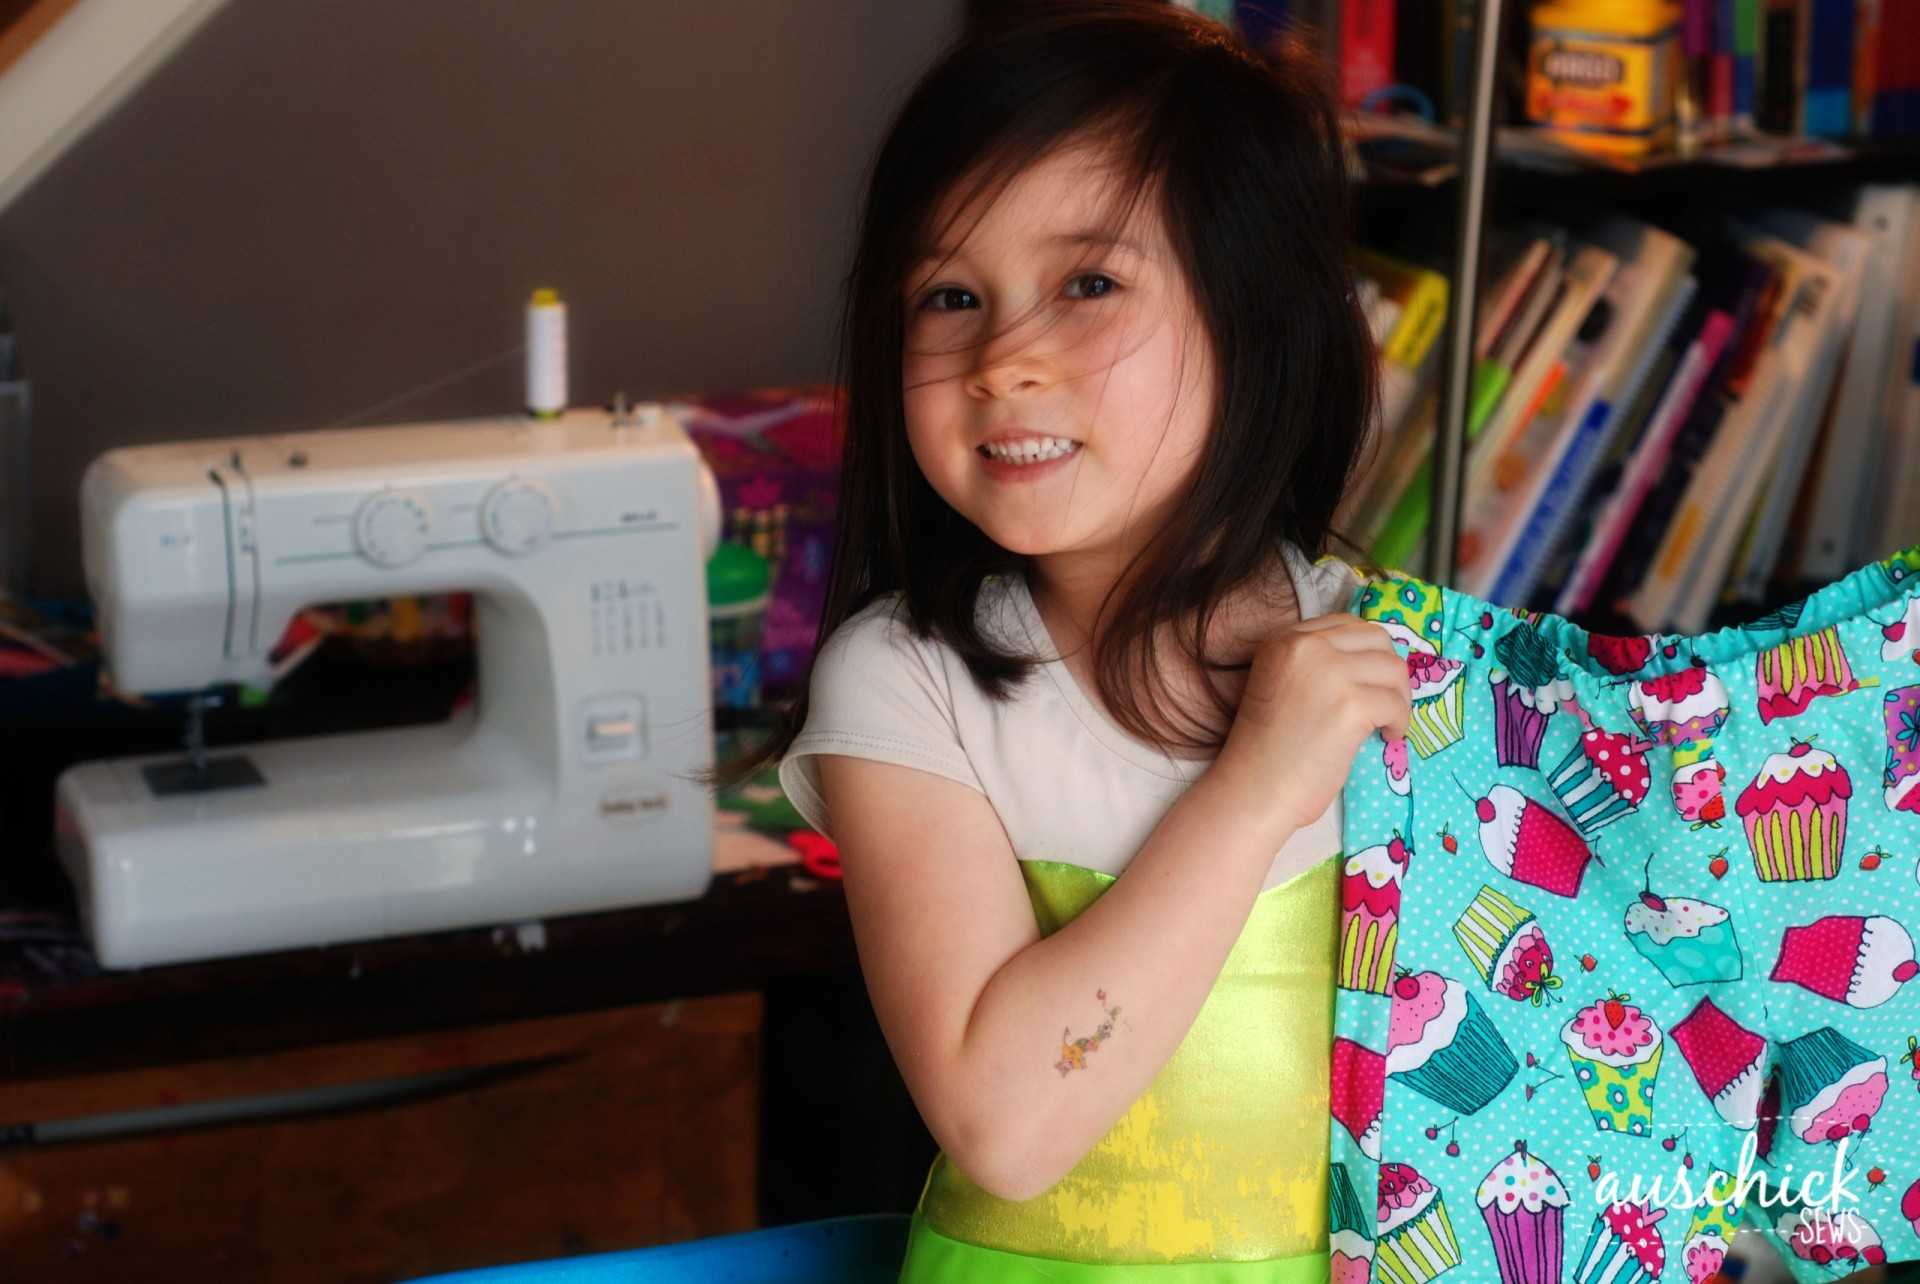 Sewing lessons should be reintroduced in schools. Image by Nat Tung